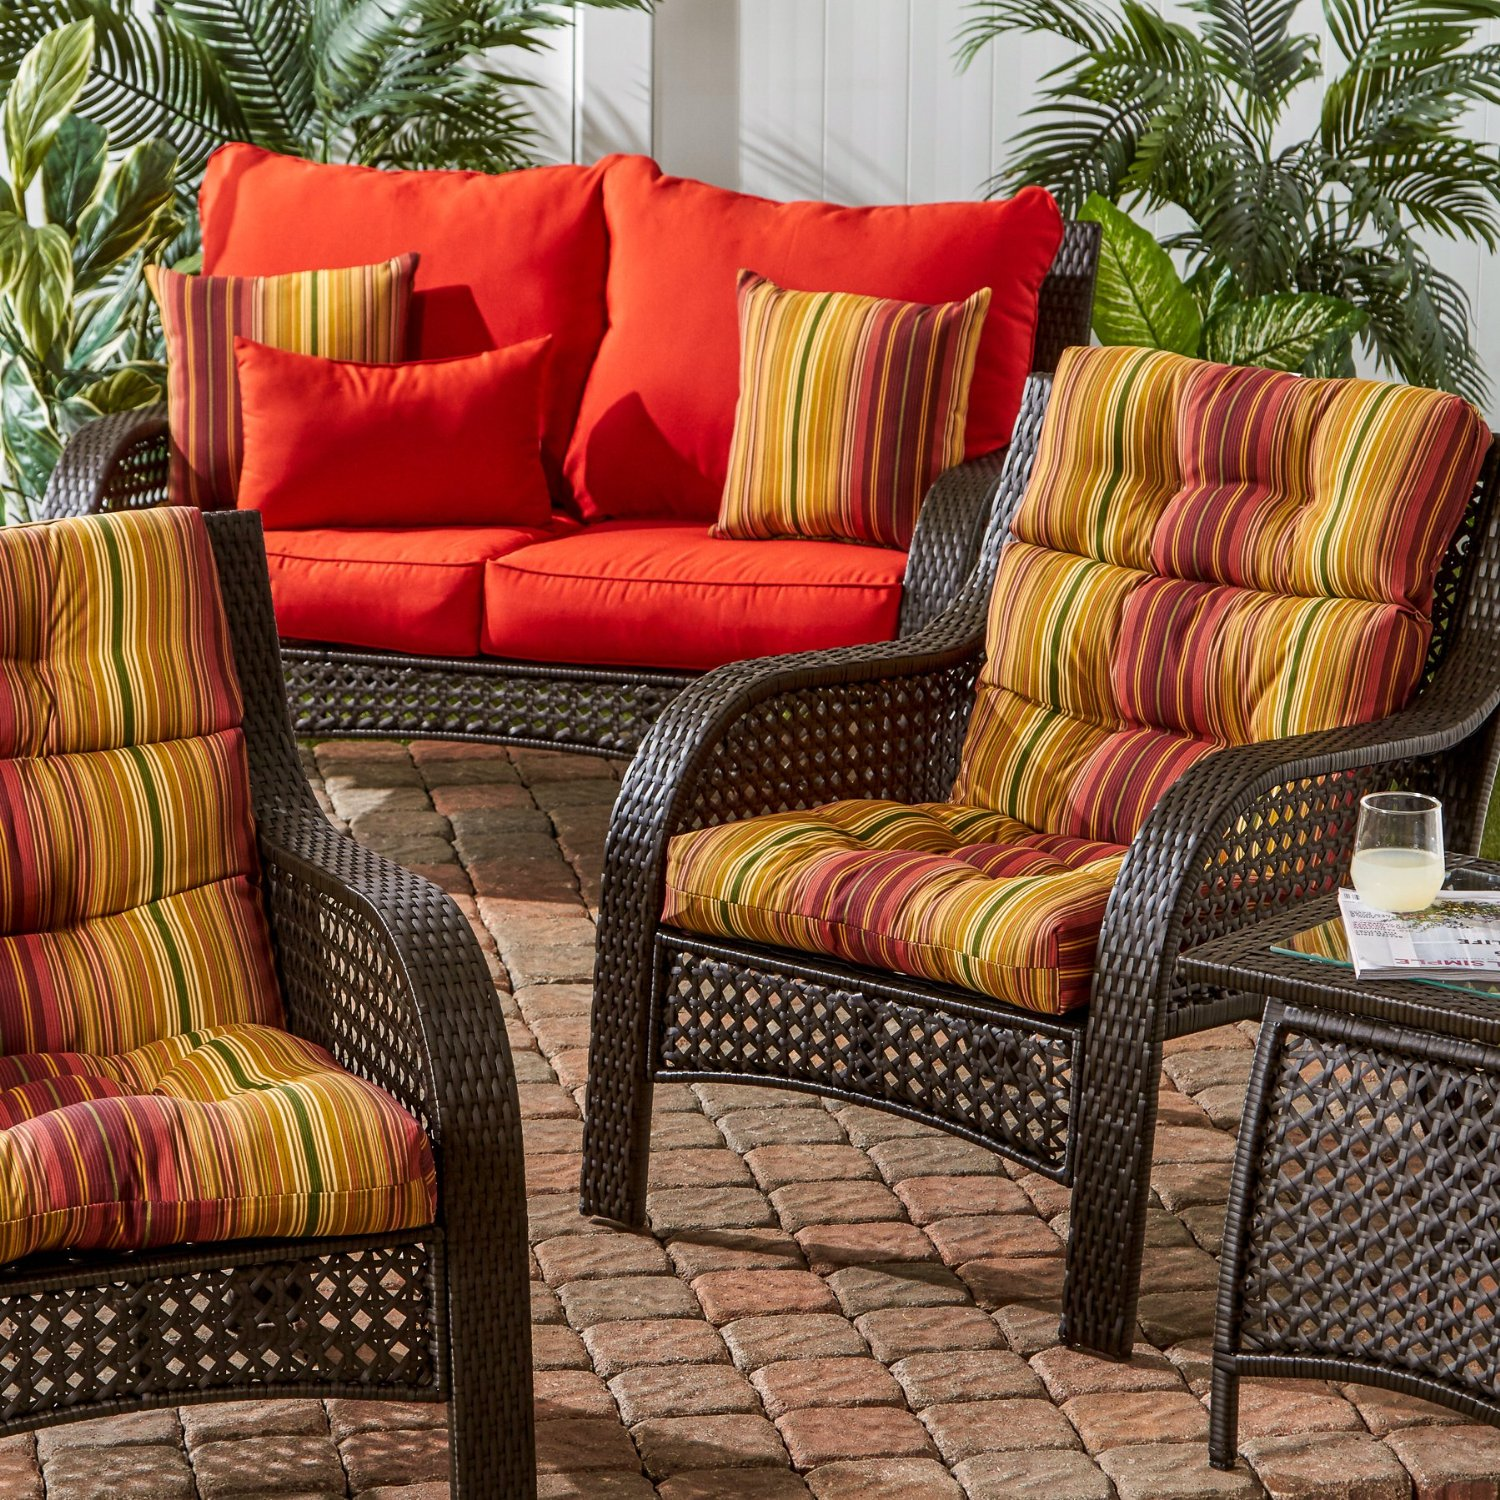 Greendale Home Fashions Indoor Outdoor High Back Chair Cushion